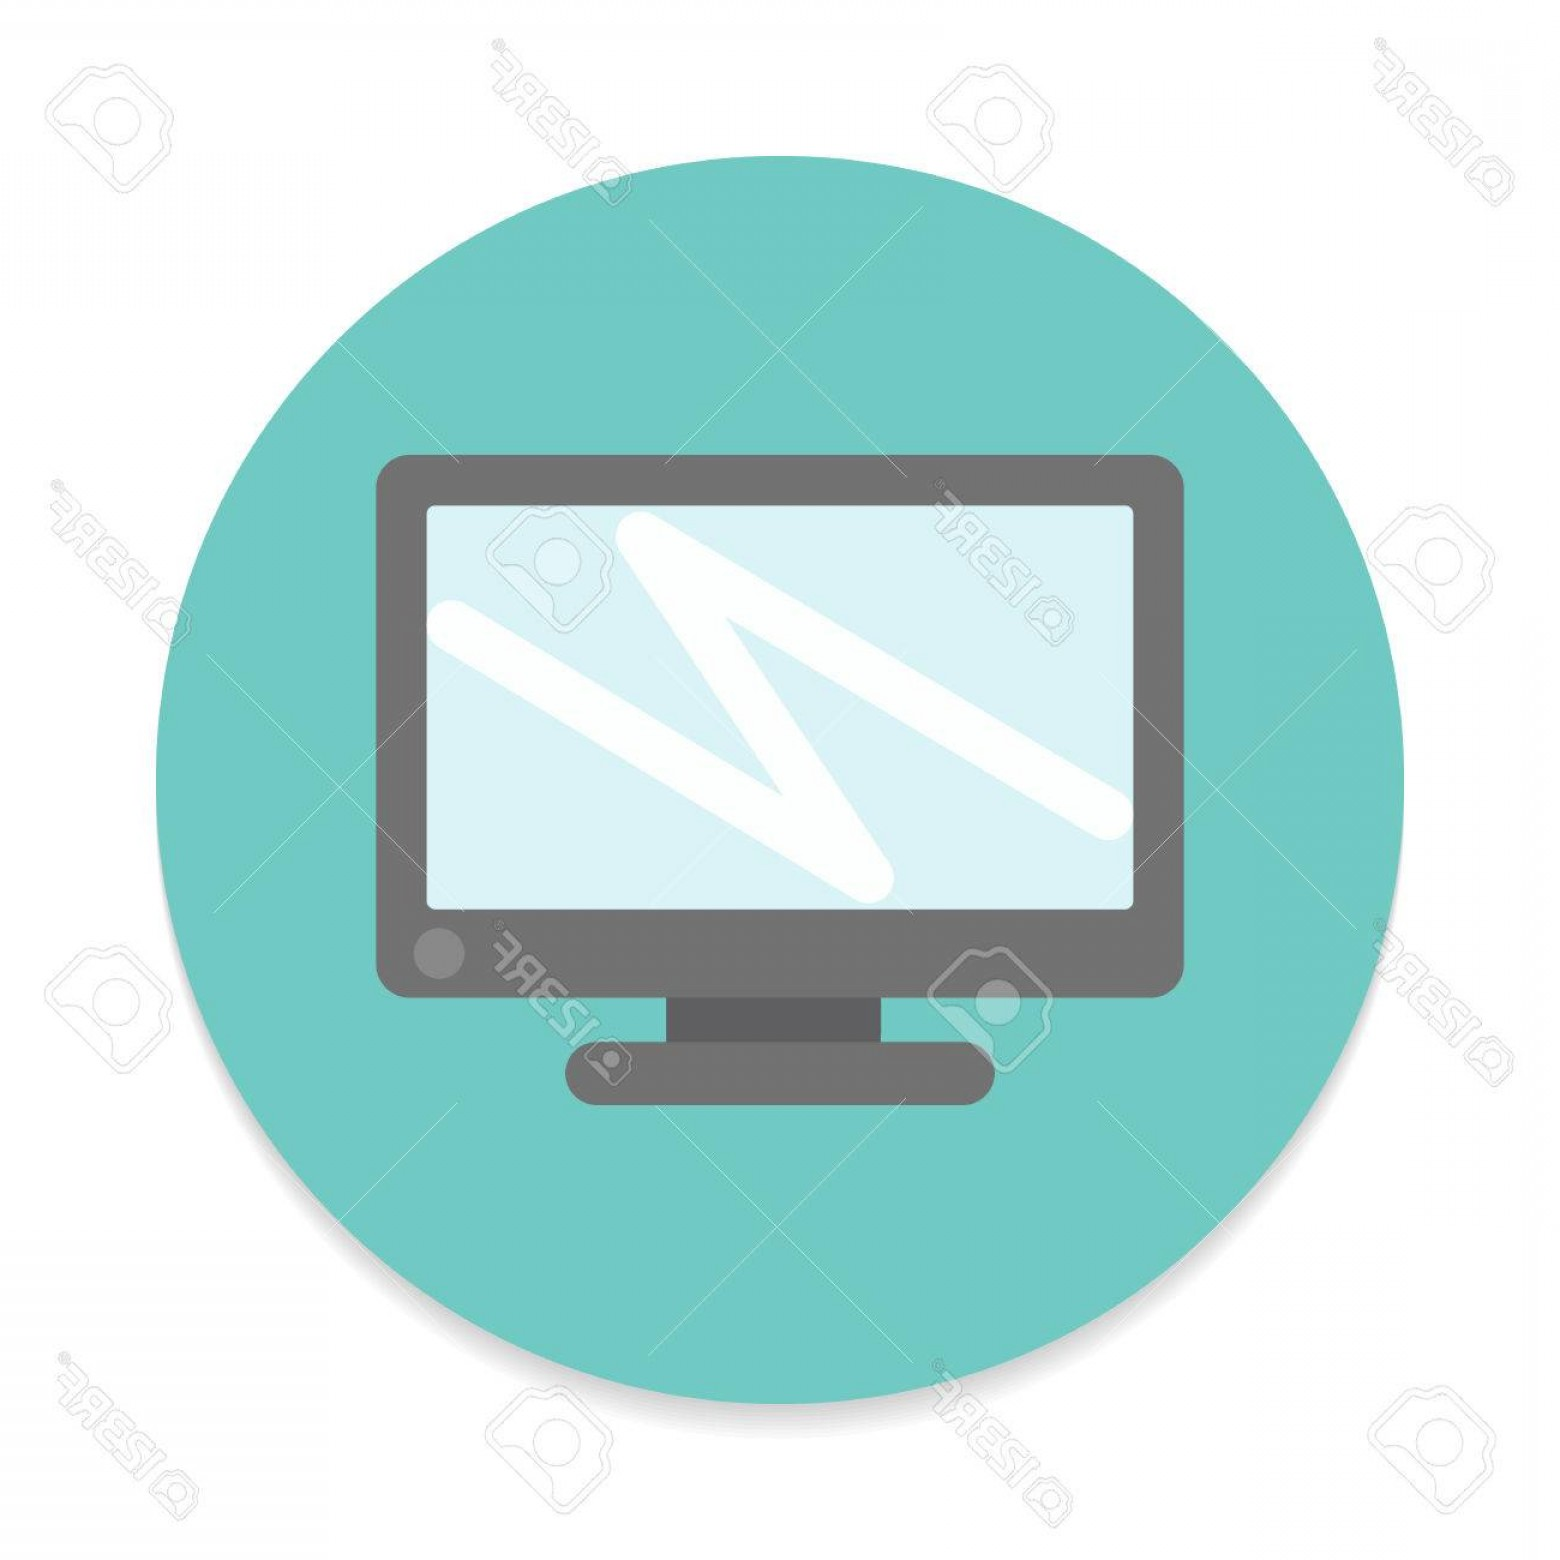 Computer Vector Icon Flat: Photostock Vector Desktop Computer Screen Flat Icon Round Colorful Button Circular Vector Sign Flat Style Design